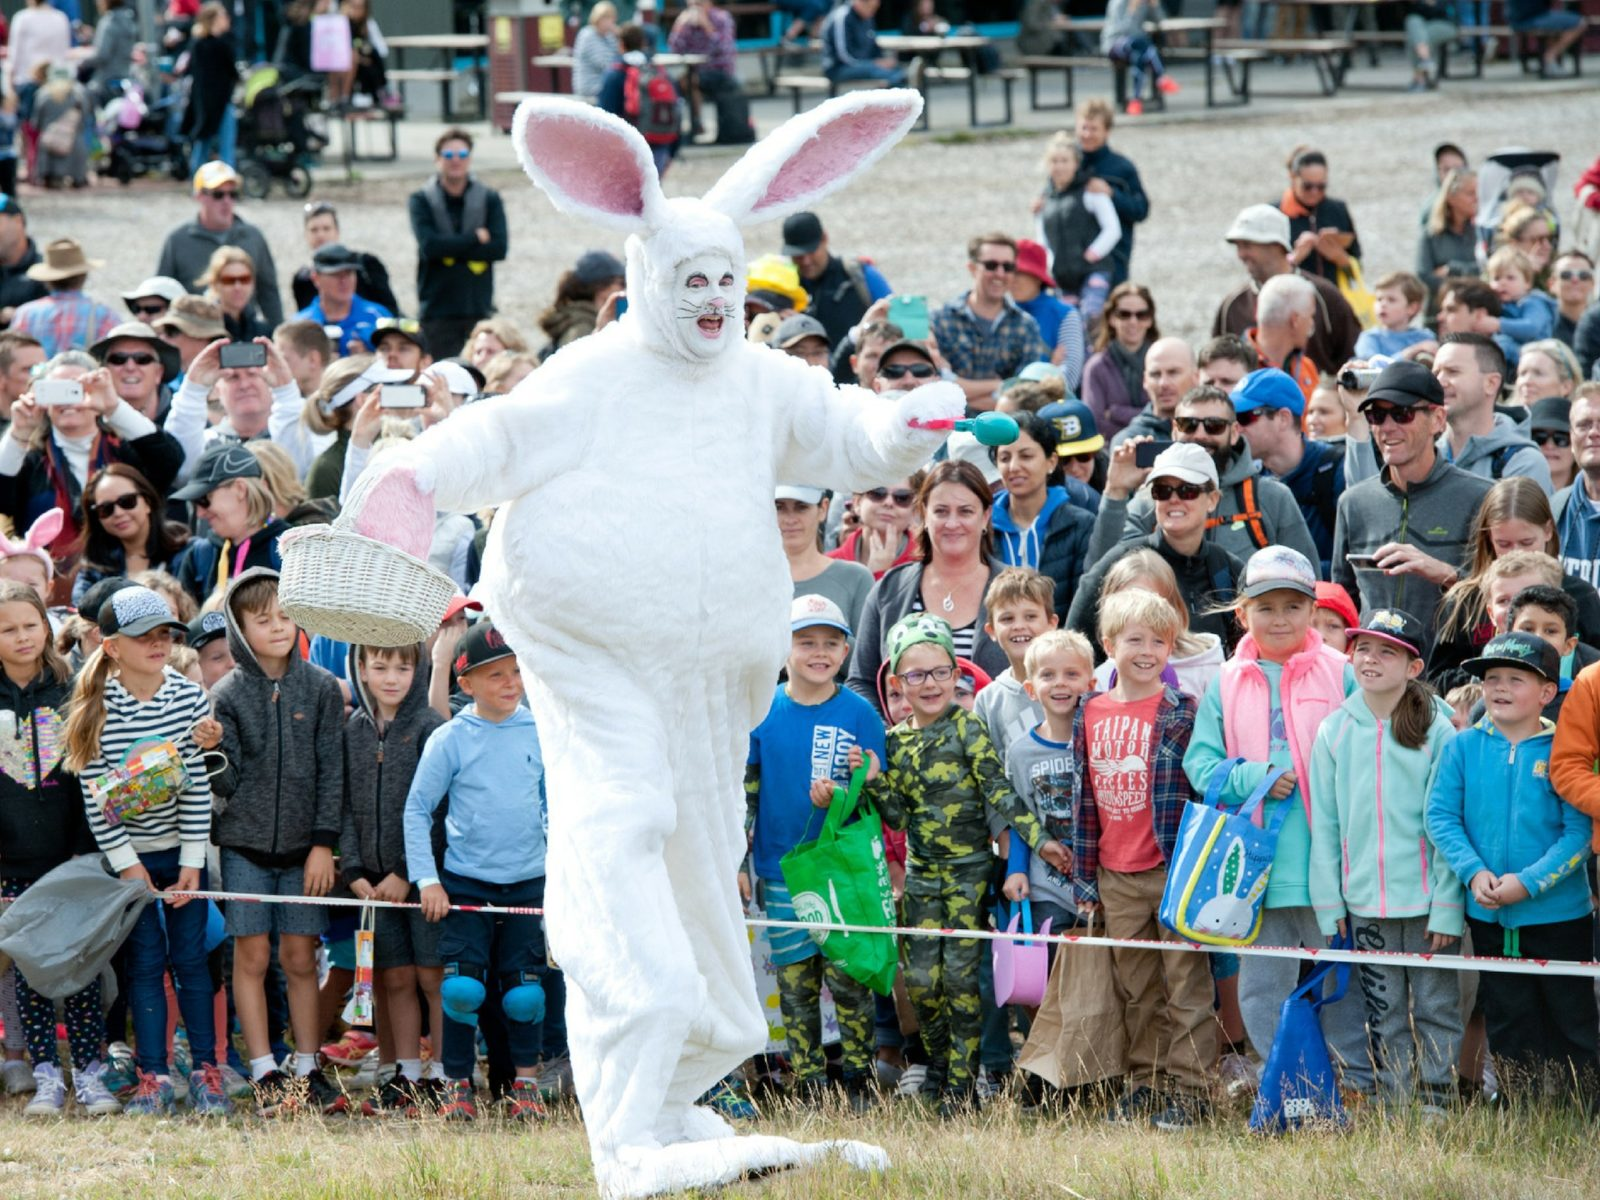 Thredbo AUD10,000 Golden Easter Egg Hunt presented by Lindt